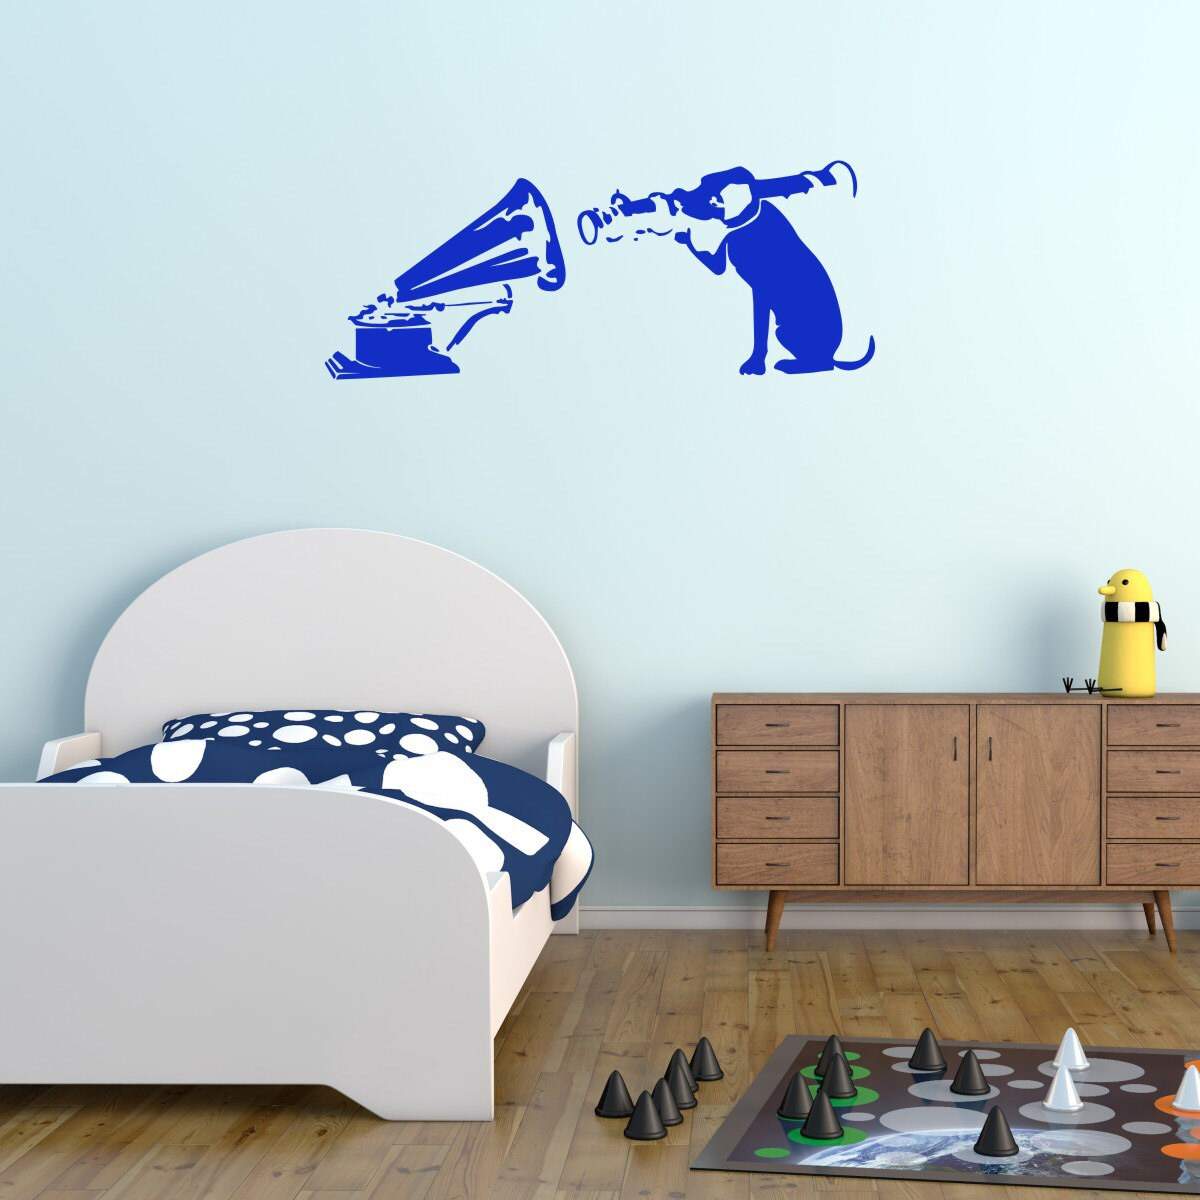 Banksy Wall Decal Blow Up Your Stereo Banksy Sticker Etsy